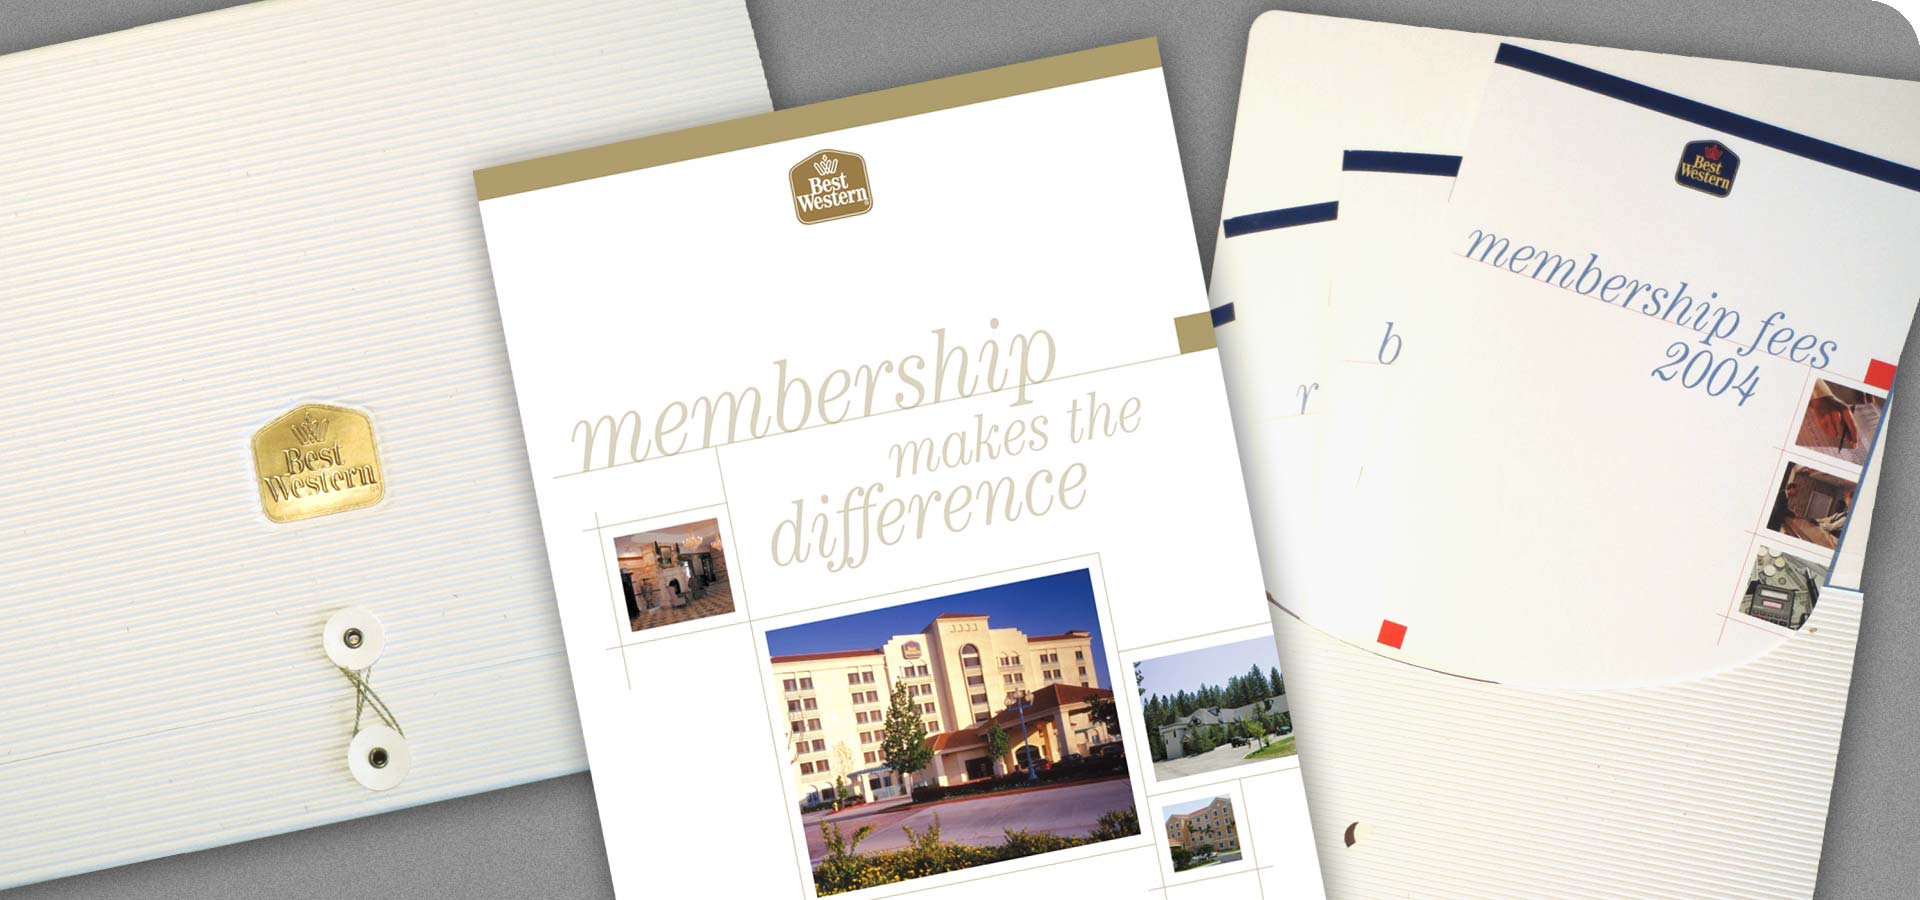 Best Western Membership Benefits Kit